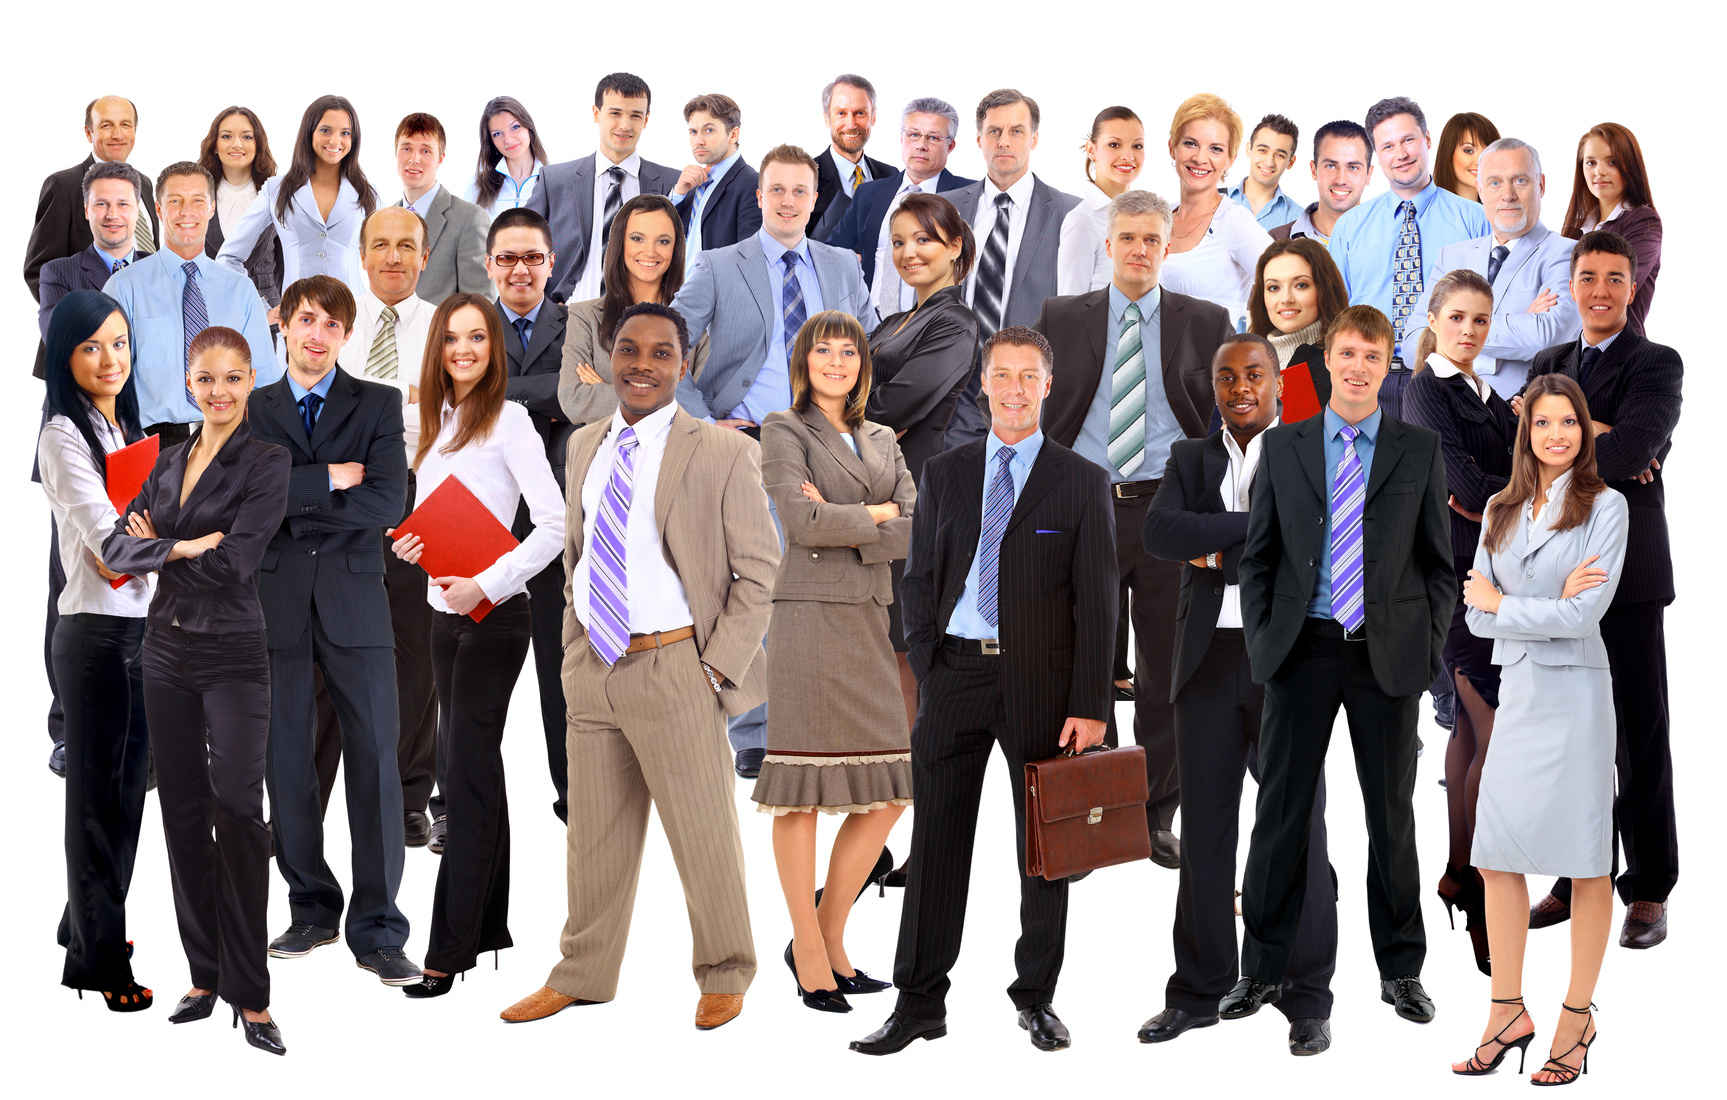 ARE YOU A RESOURCE OR NUISANCE TO YOUR EMPLOYER?